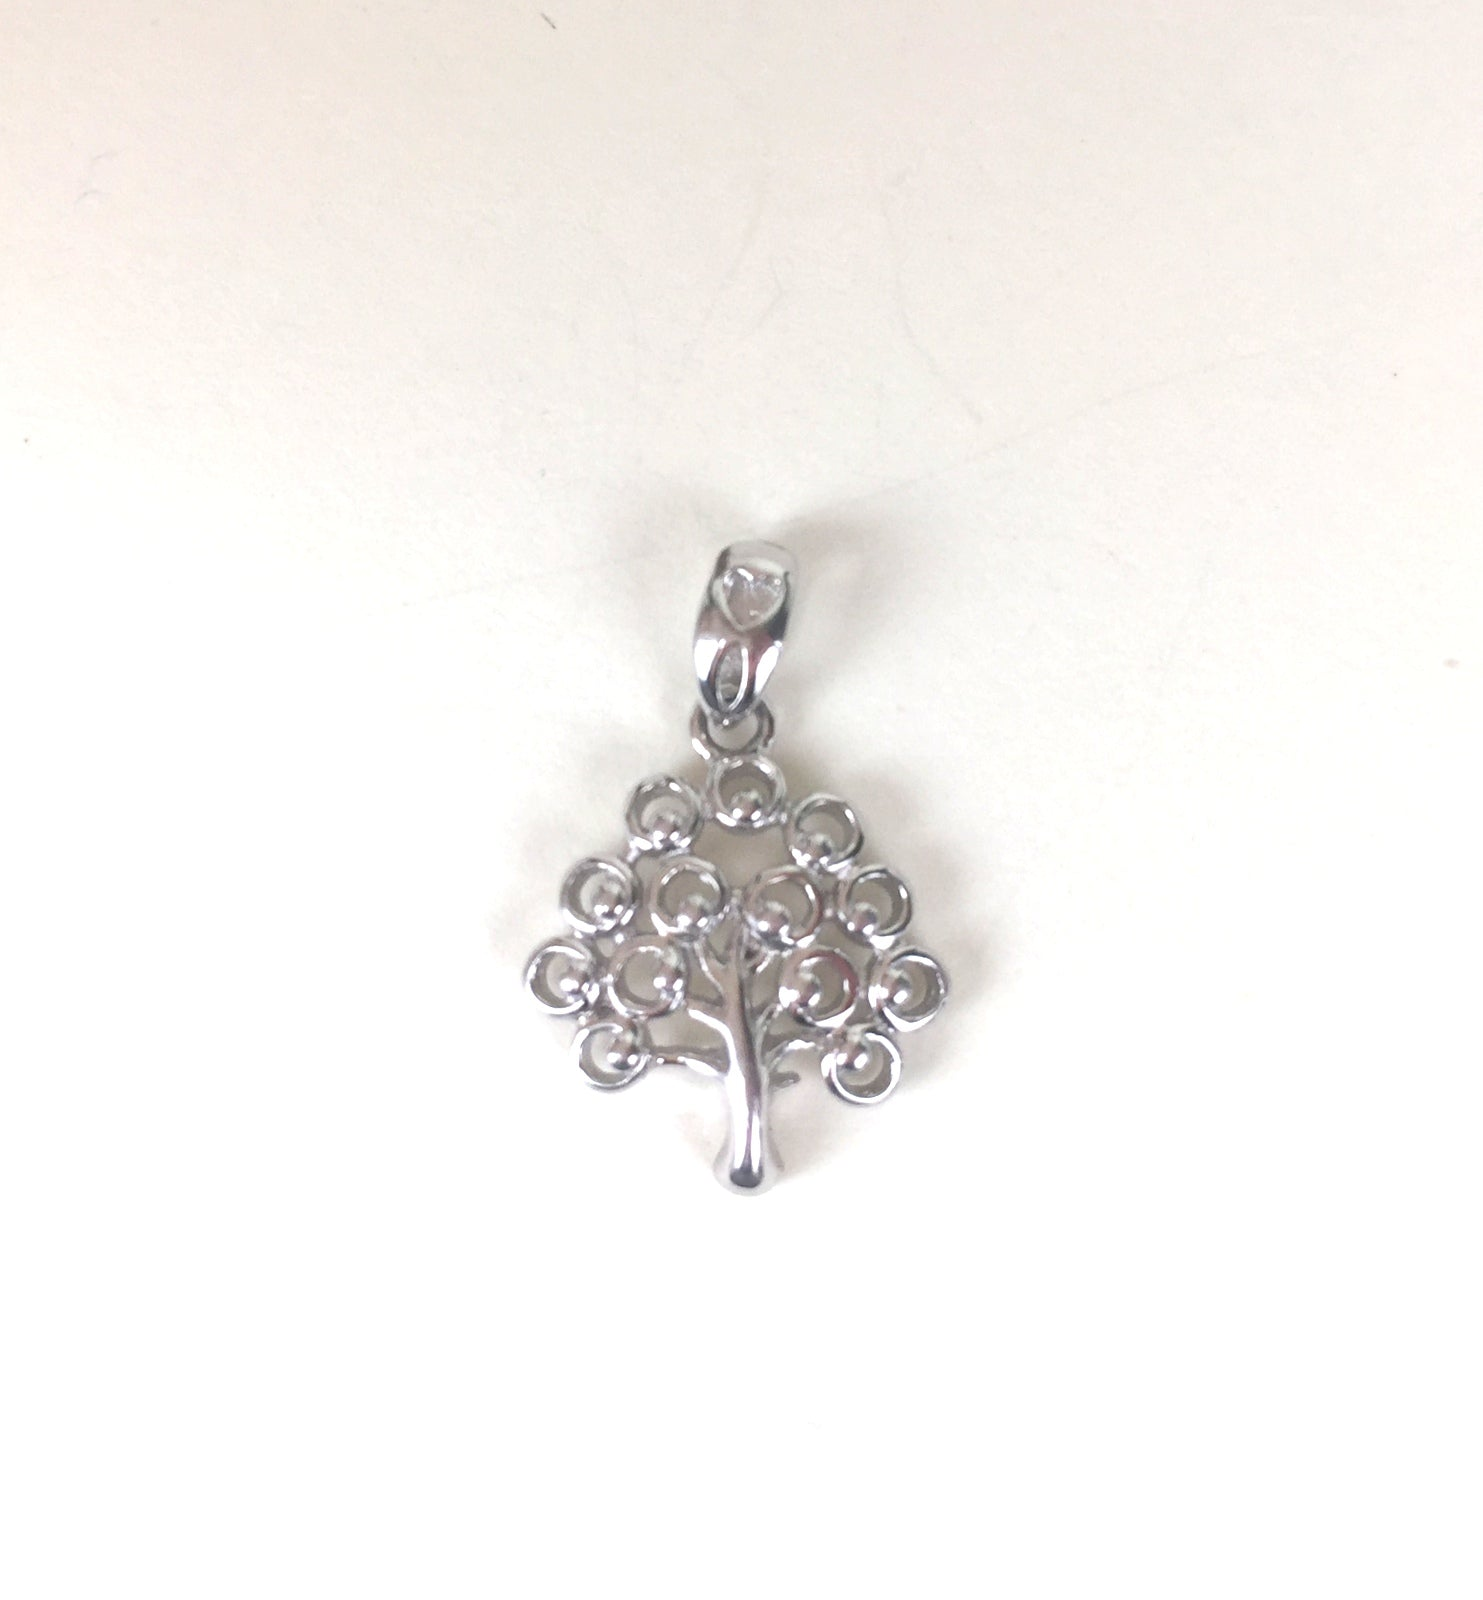 TREE STERLING SILVER PENDANT